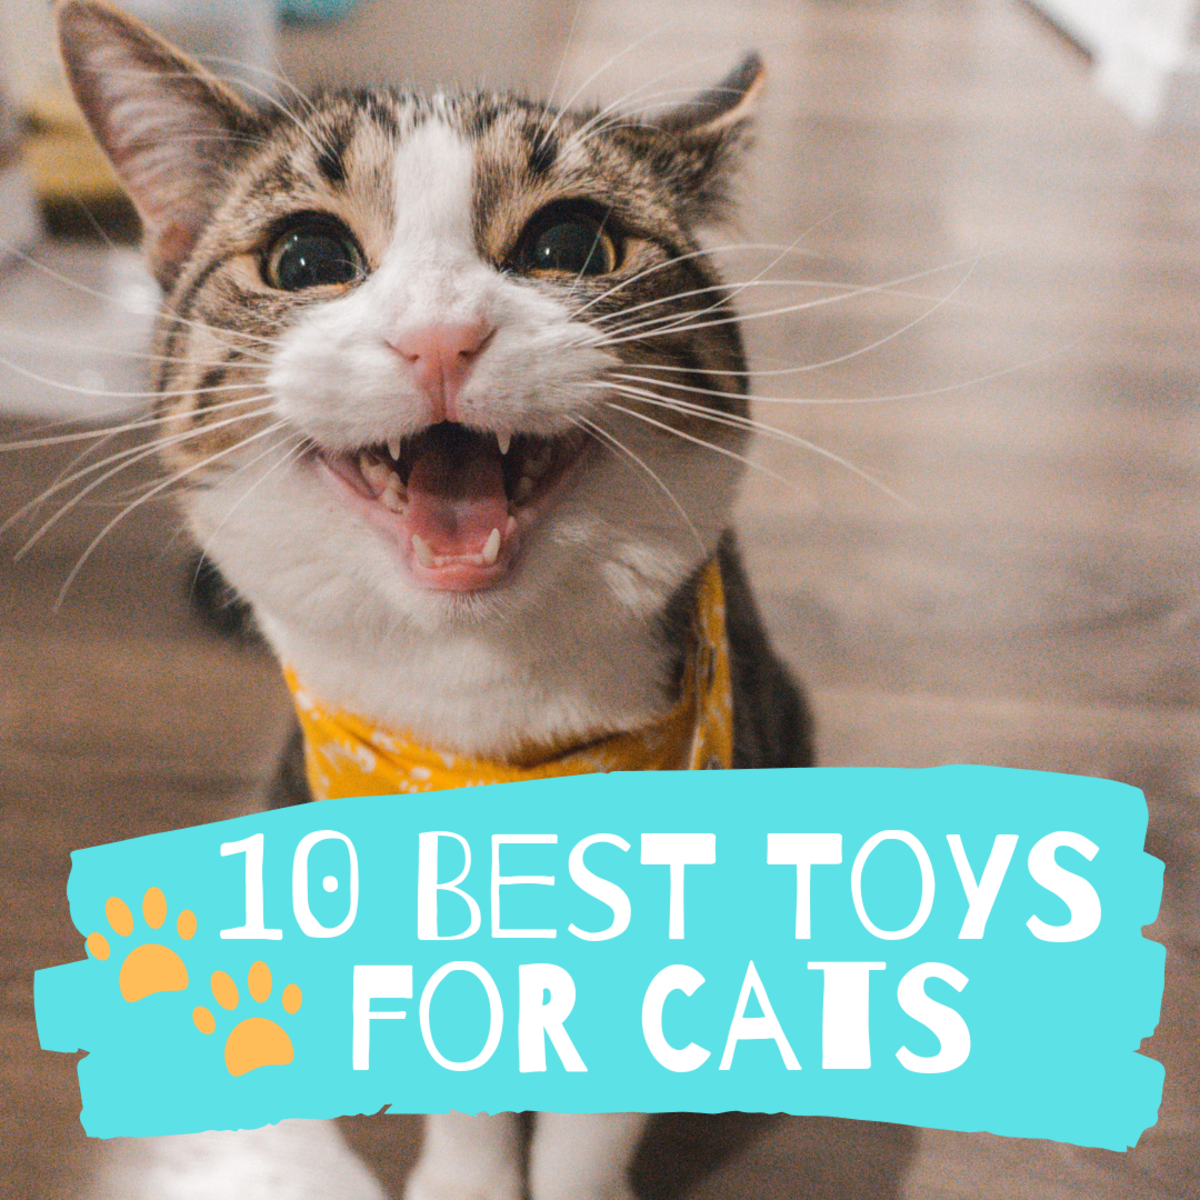 Get the Purrrfect Gift for Your Crazy Kitty